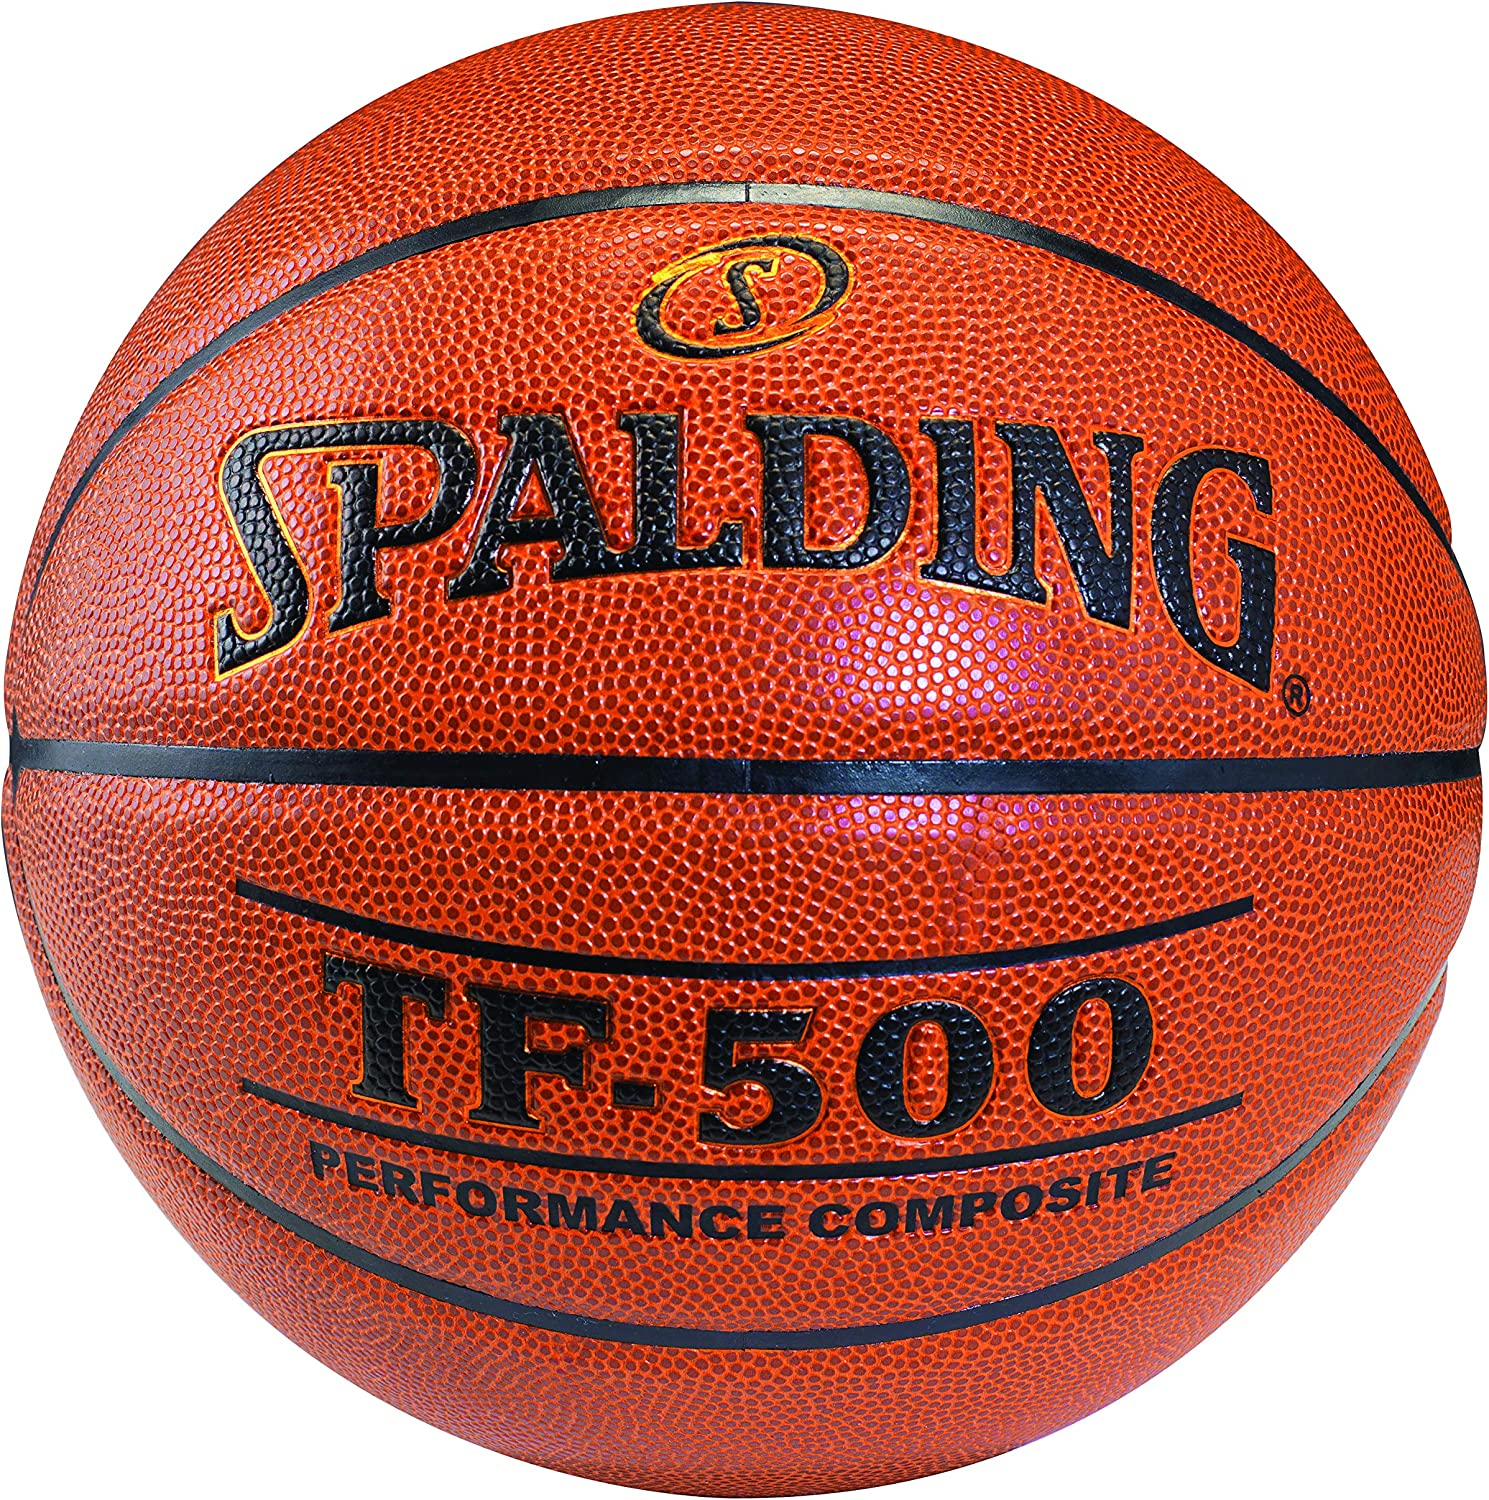 Spalding TF de 500 Indoor/Outdoor – Balón de Baloncesto (Talla 7 ...